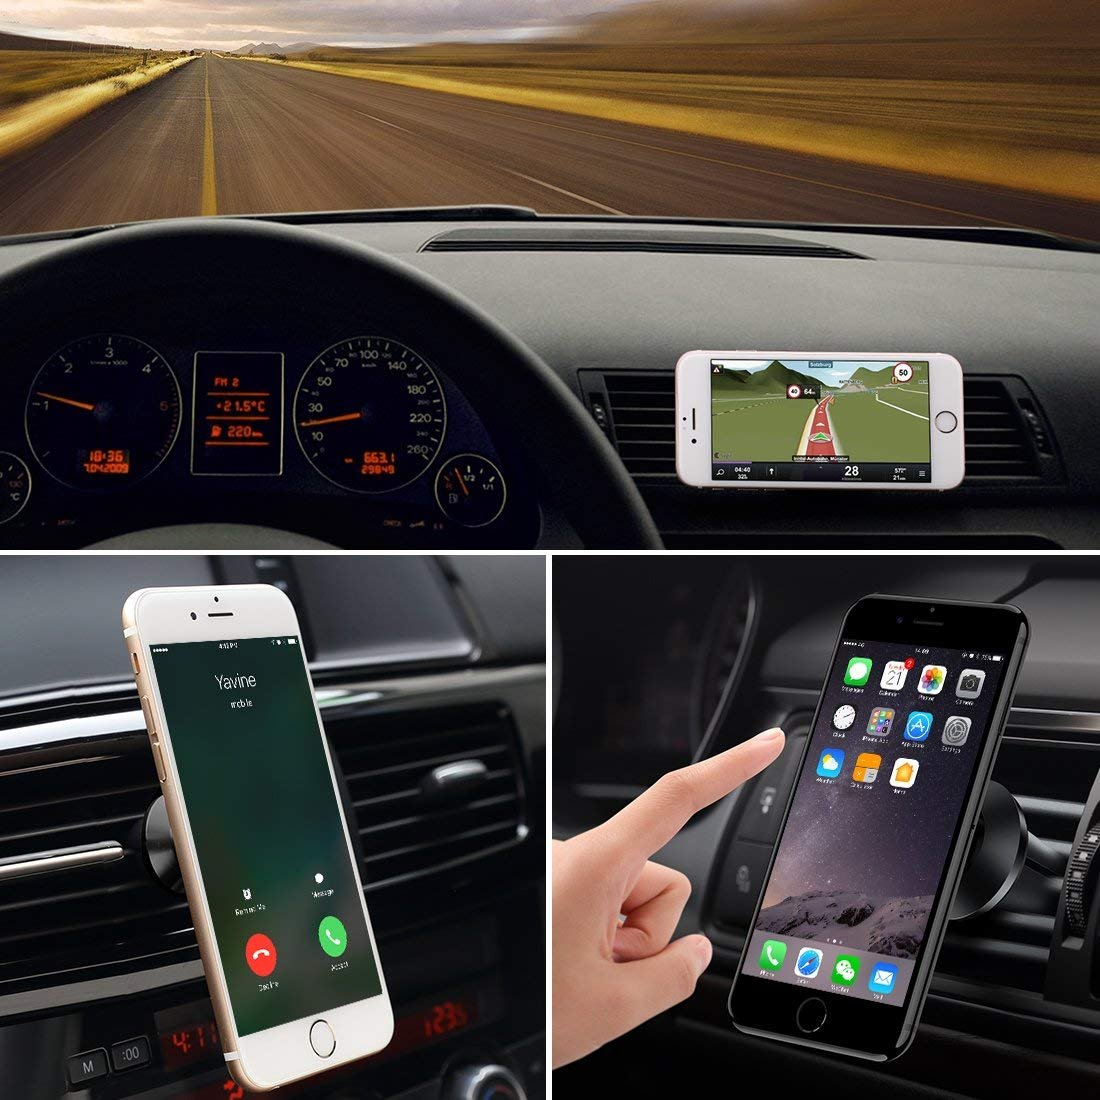 iPhone Xs//XS Max//XR //X//8//7//6 Red 4351550975 LG MKOAWA Magnetic Phone Car Mount Vent 360/° Rotation Cell Phone Holder for car Phone Holder for Samsung Galaxy Note 9 S9//S9+ Plus//S8//S8+ Plus//S7 GPS and More